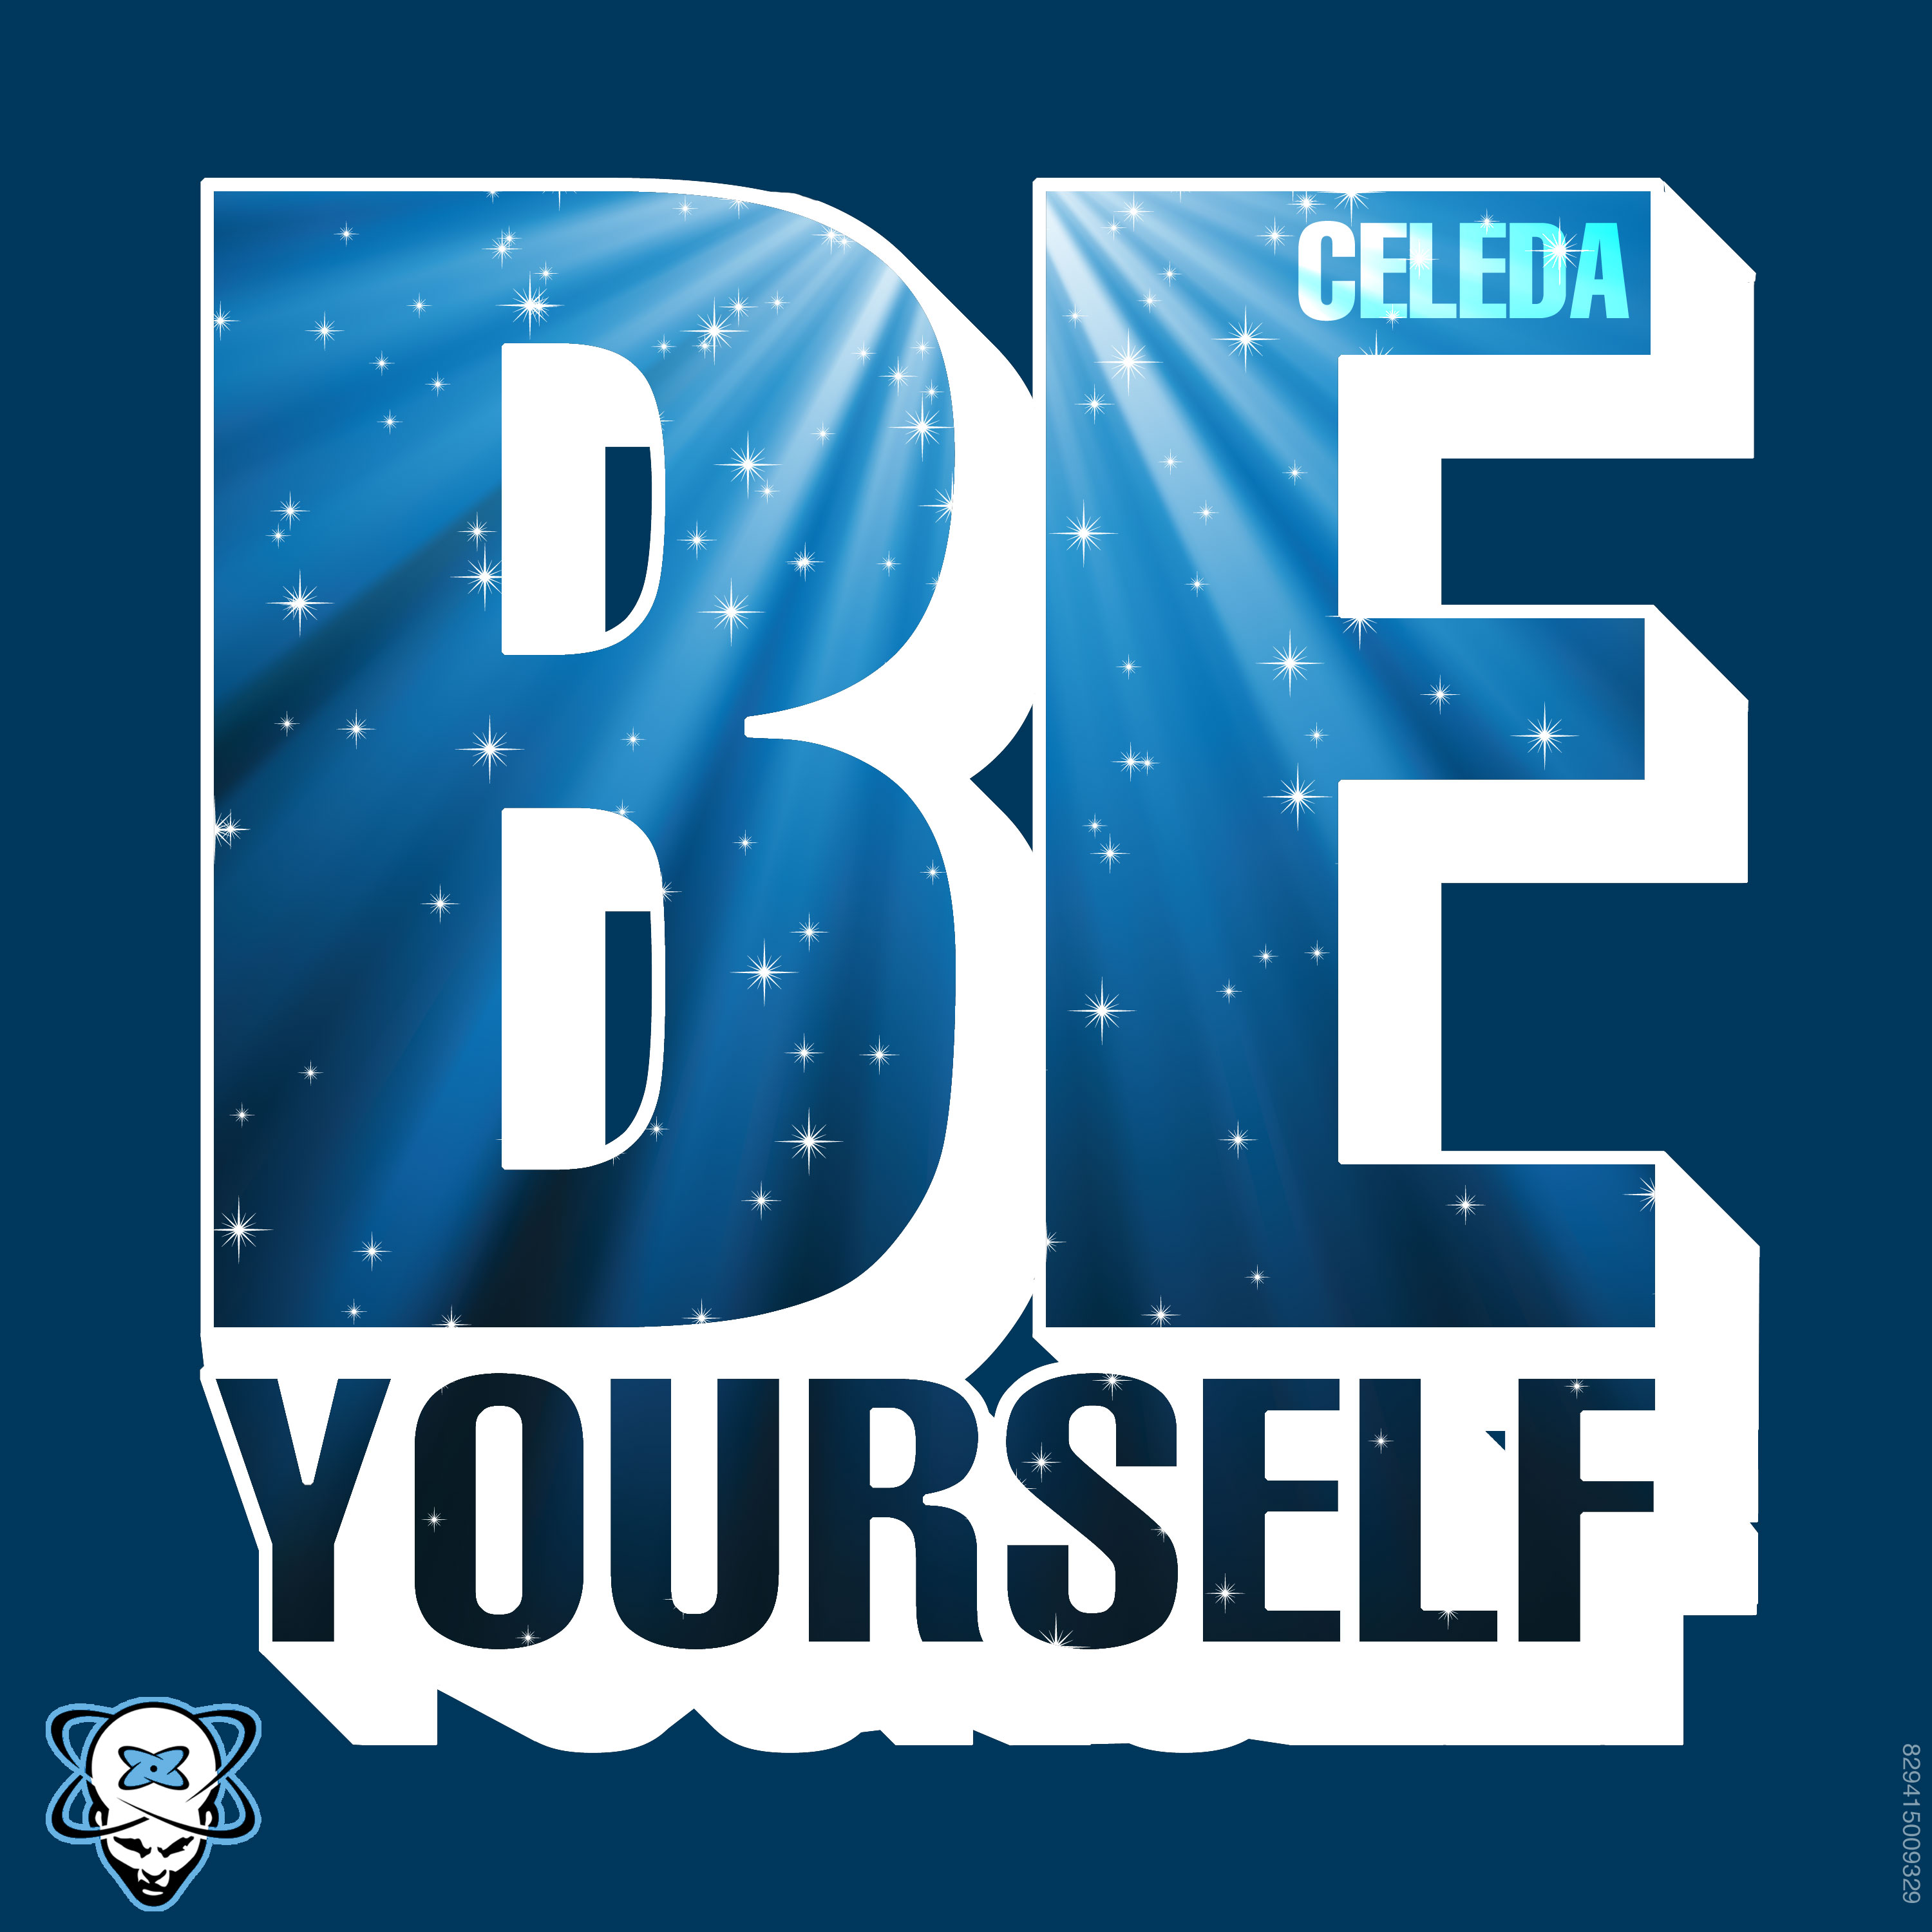 Be Yourself (and No One Else)